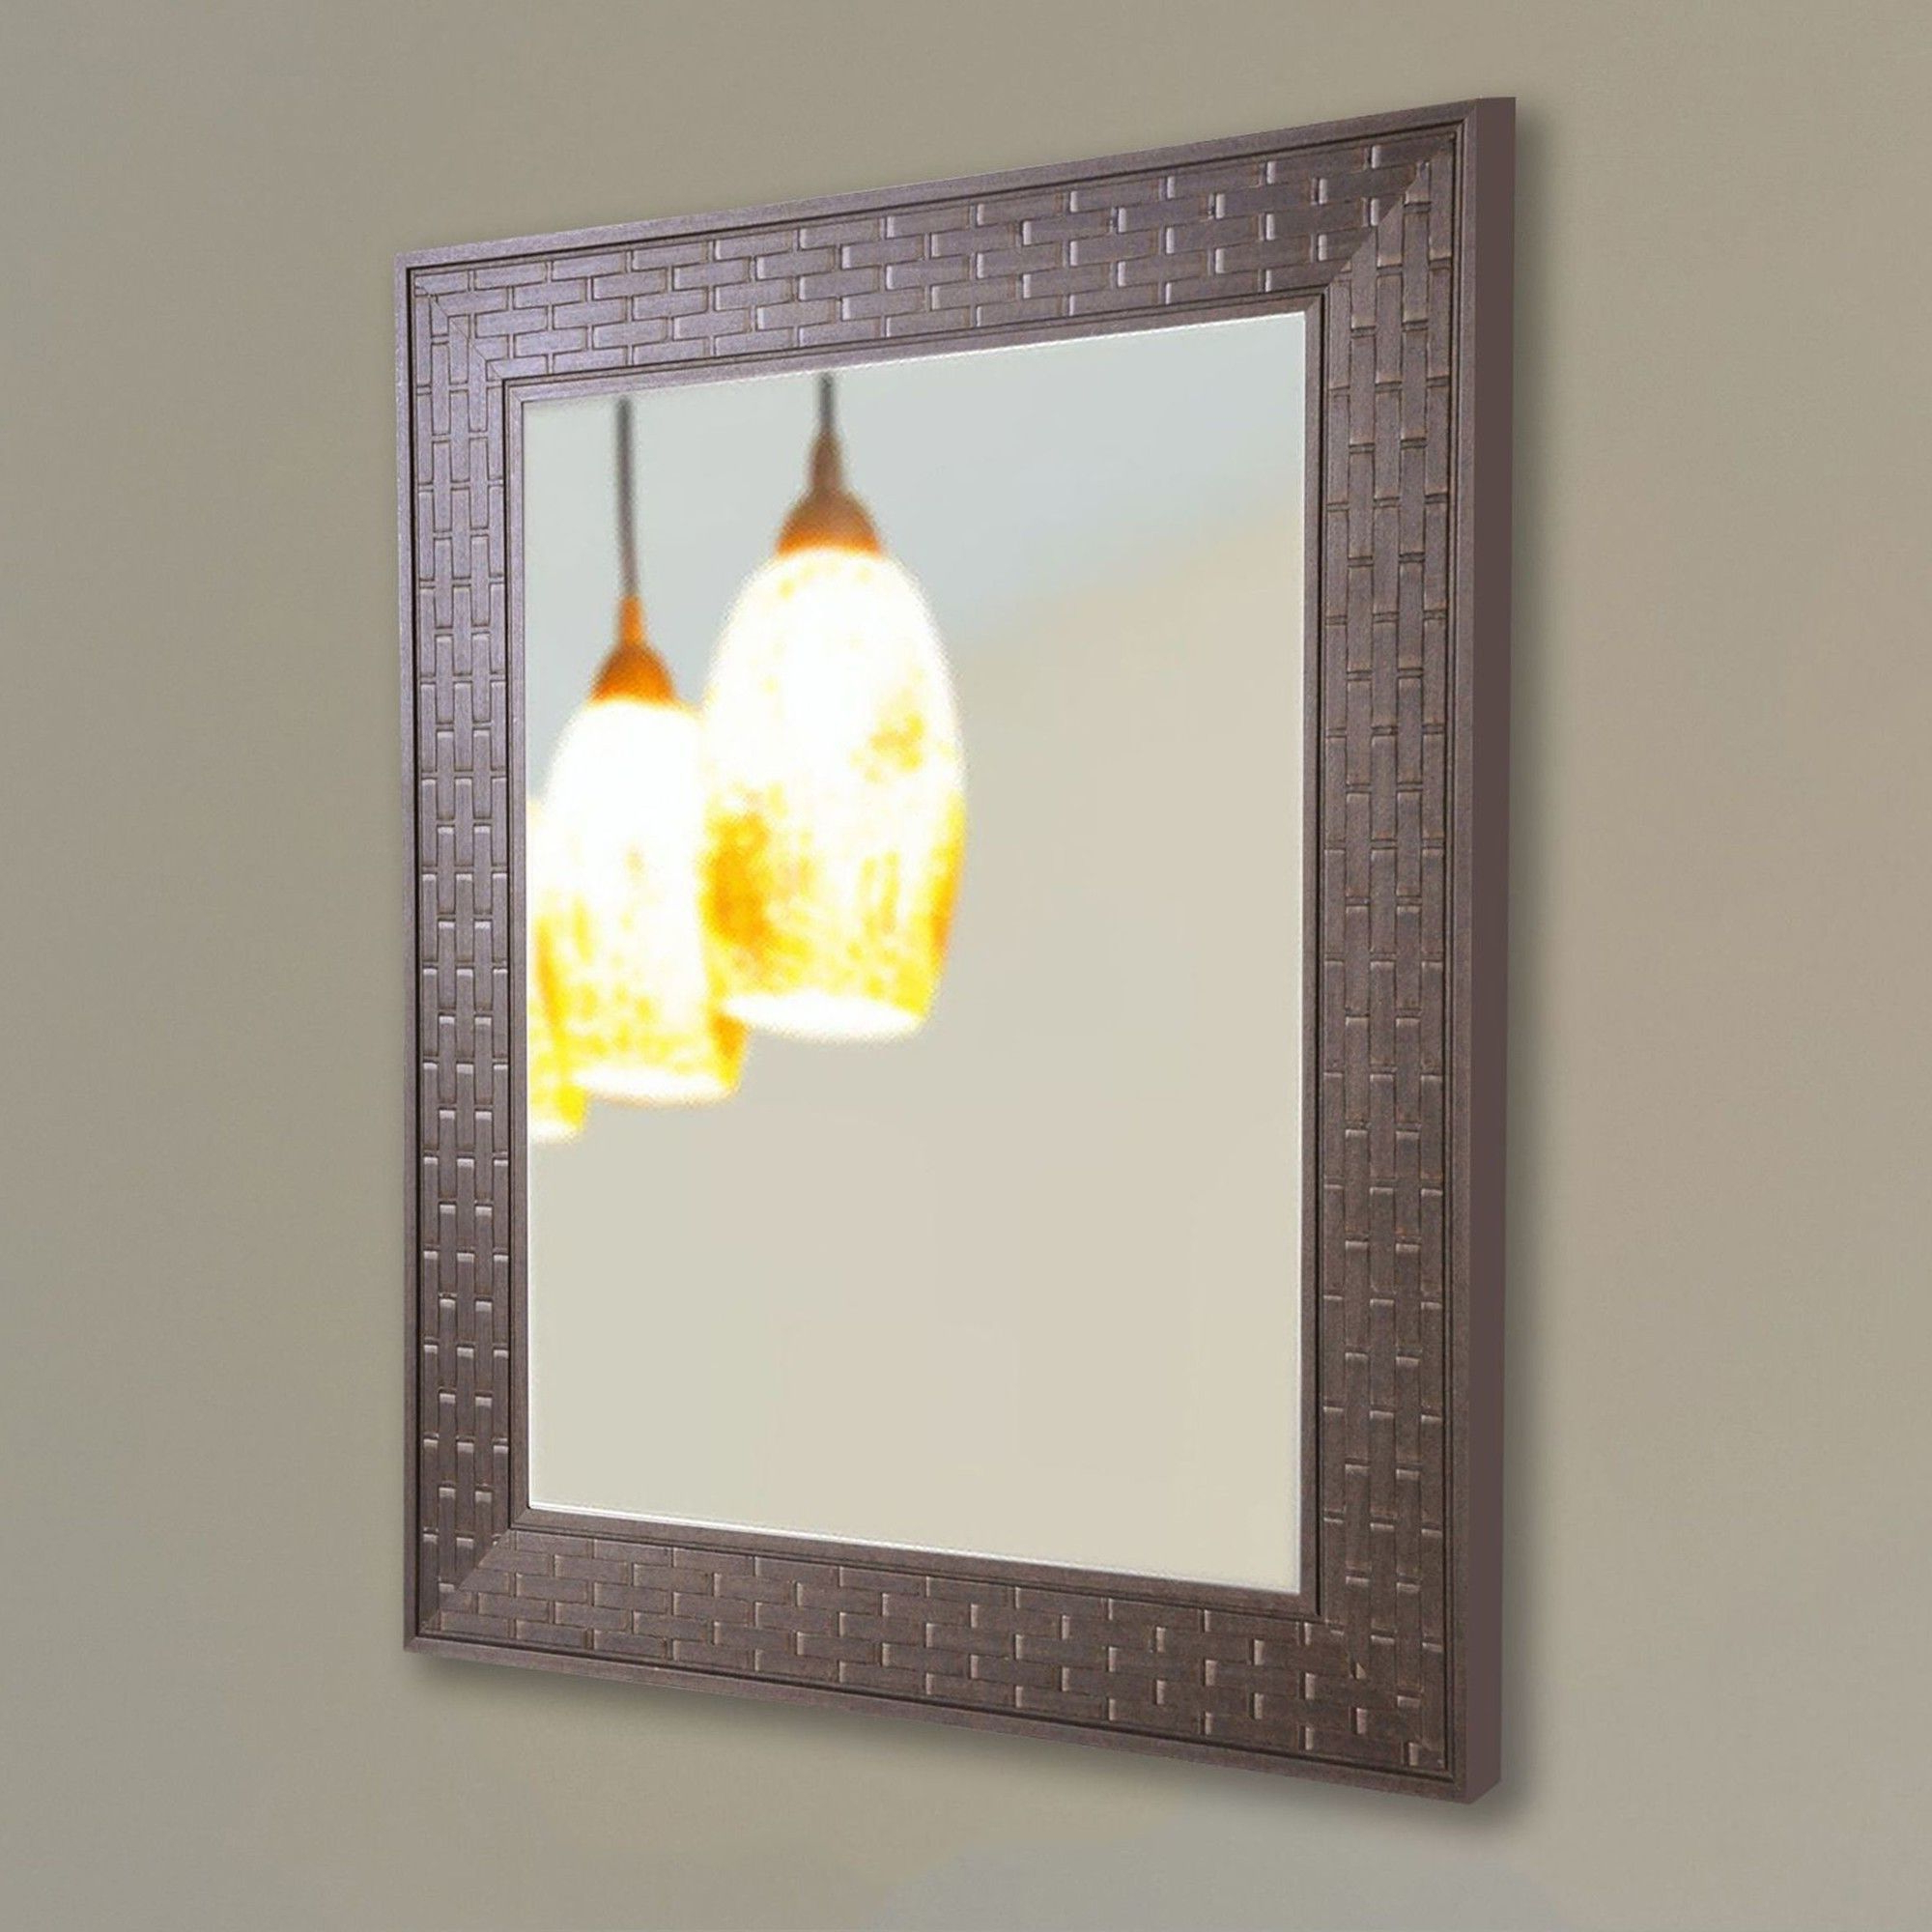 Recent 9 Unbelievable Diy Ideas: Wall Mirror Collage Middle Large With Large Wall Mirrors Ikea (View 15 of 20)